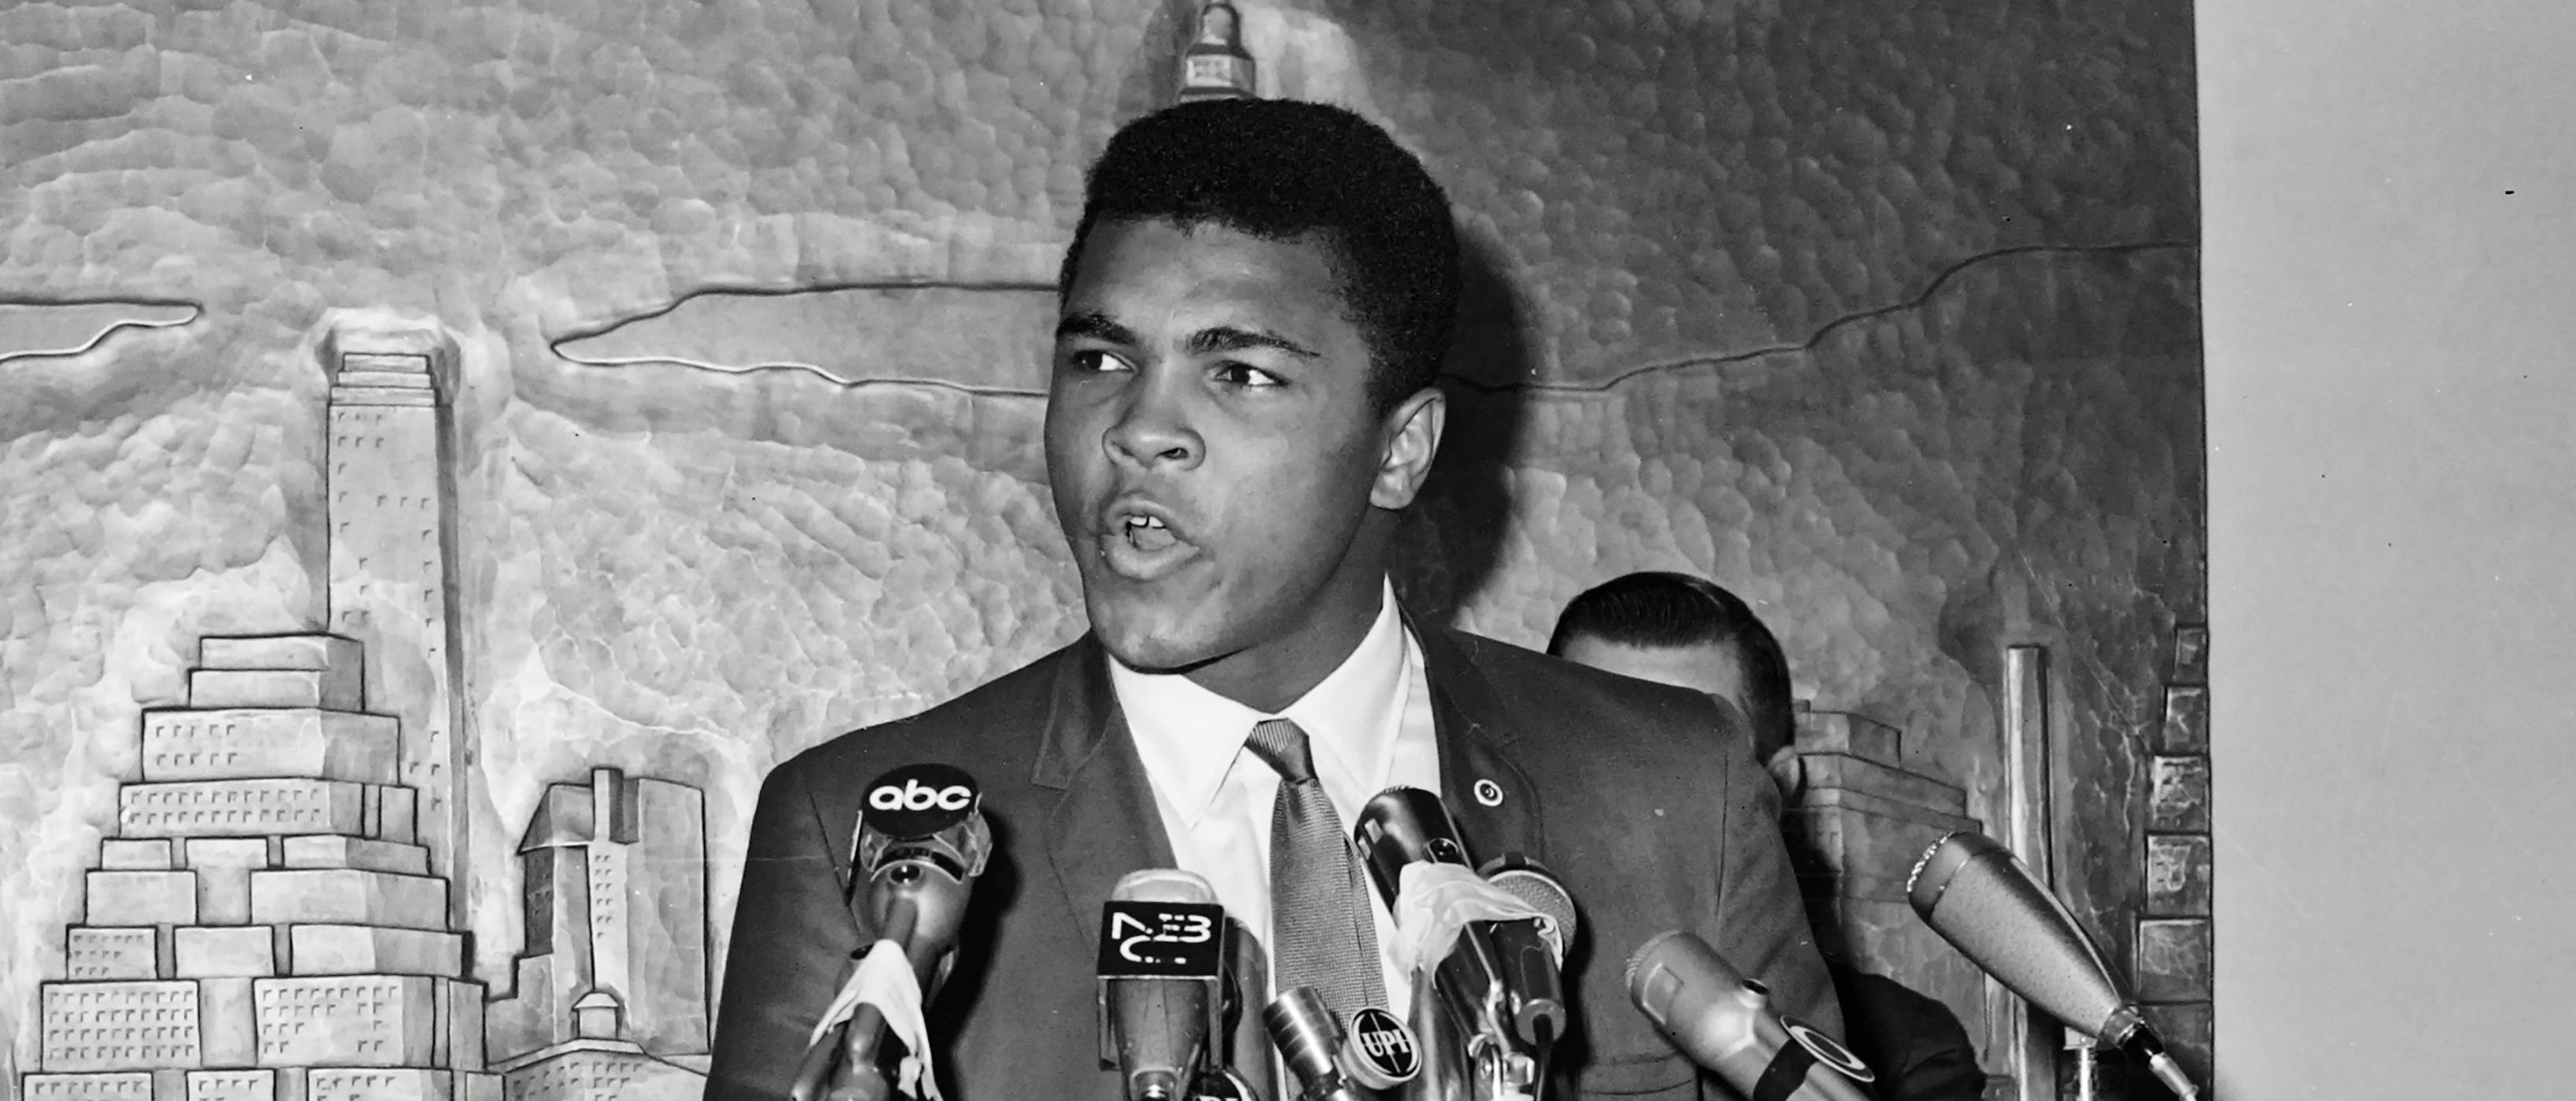 Muhammad Ali Wrote To Mary Jo Kopechne's Father After Her Death 50 Years Ago, Family Says | The Daily Caller